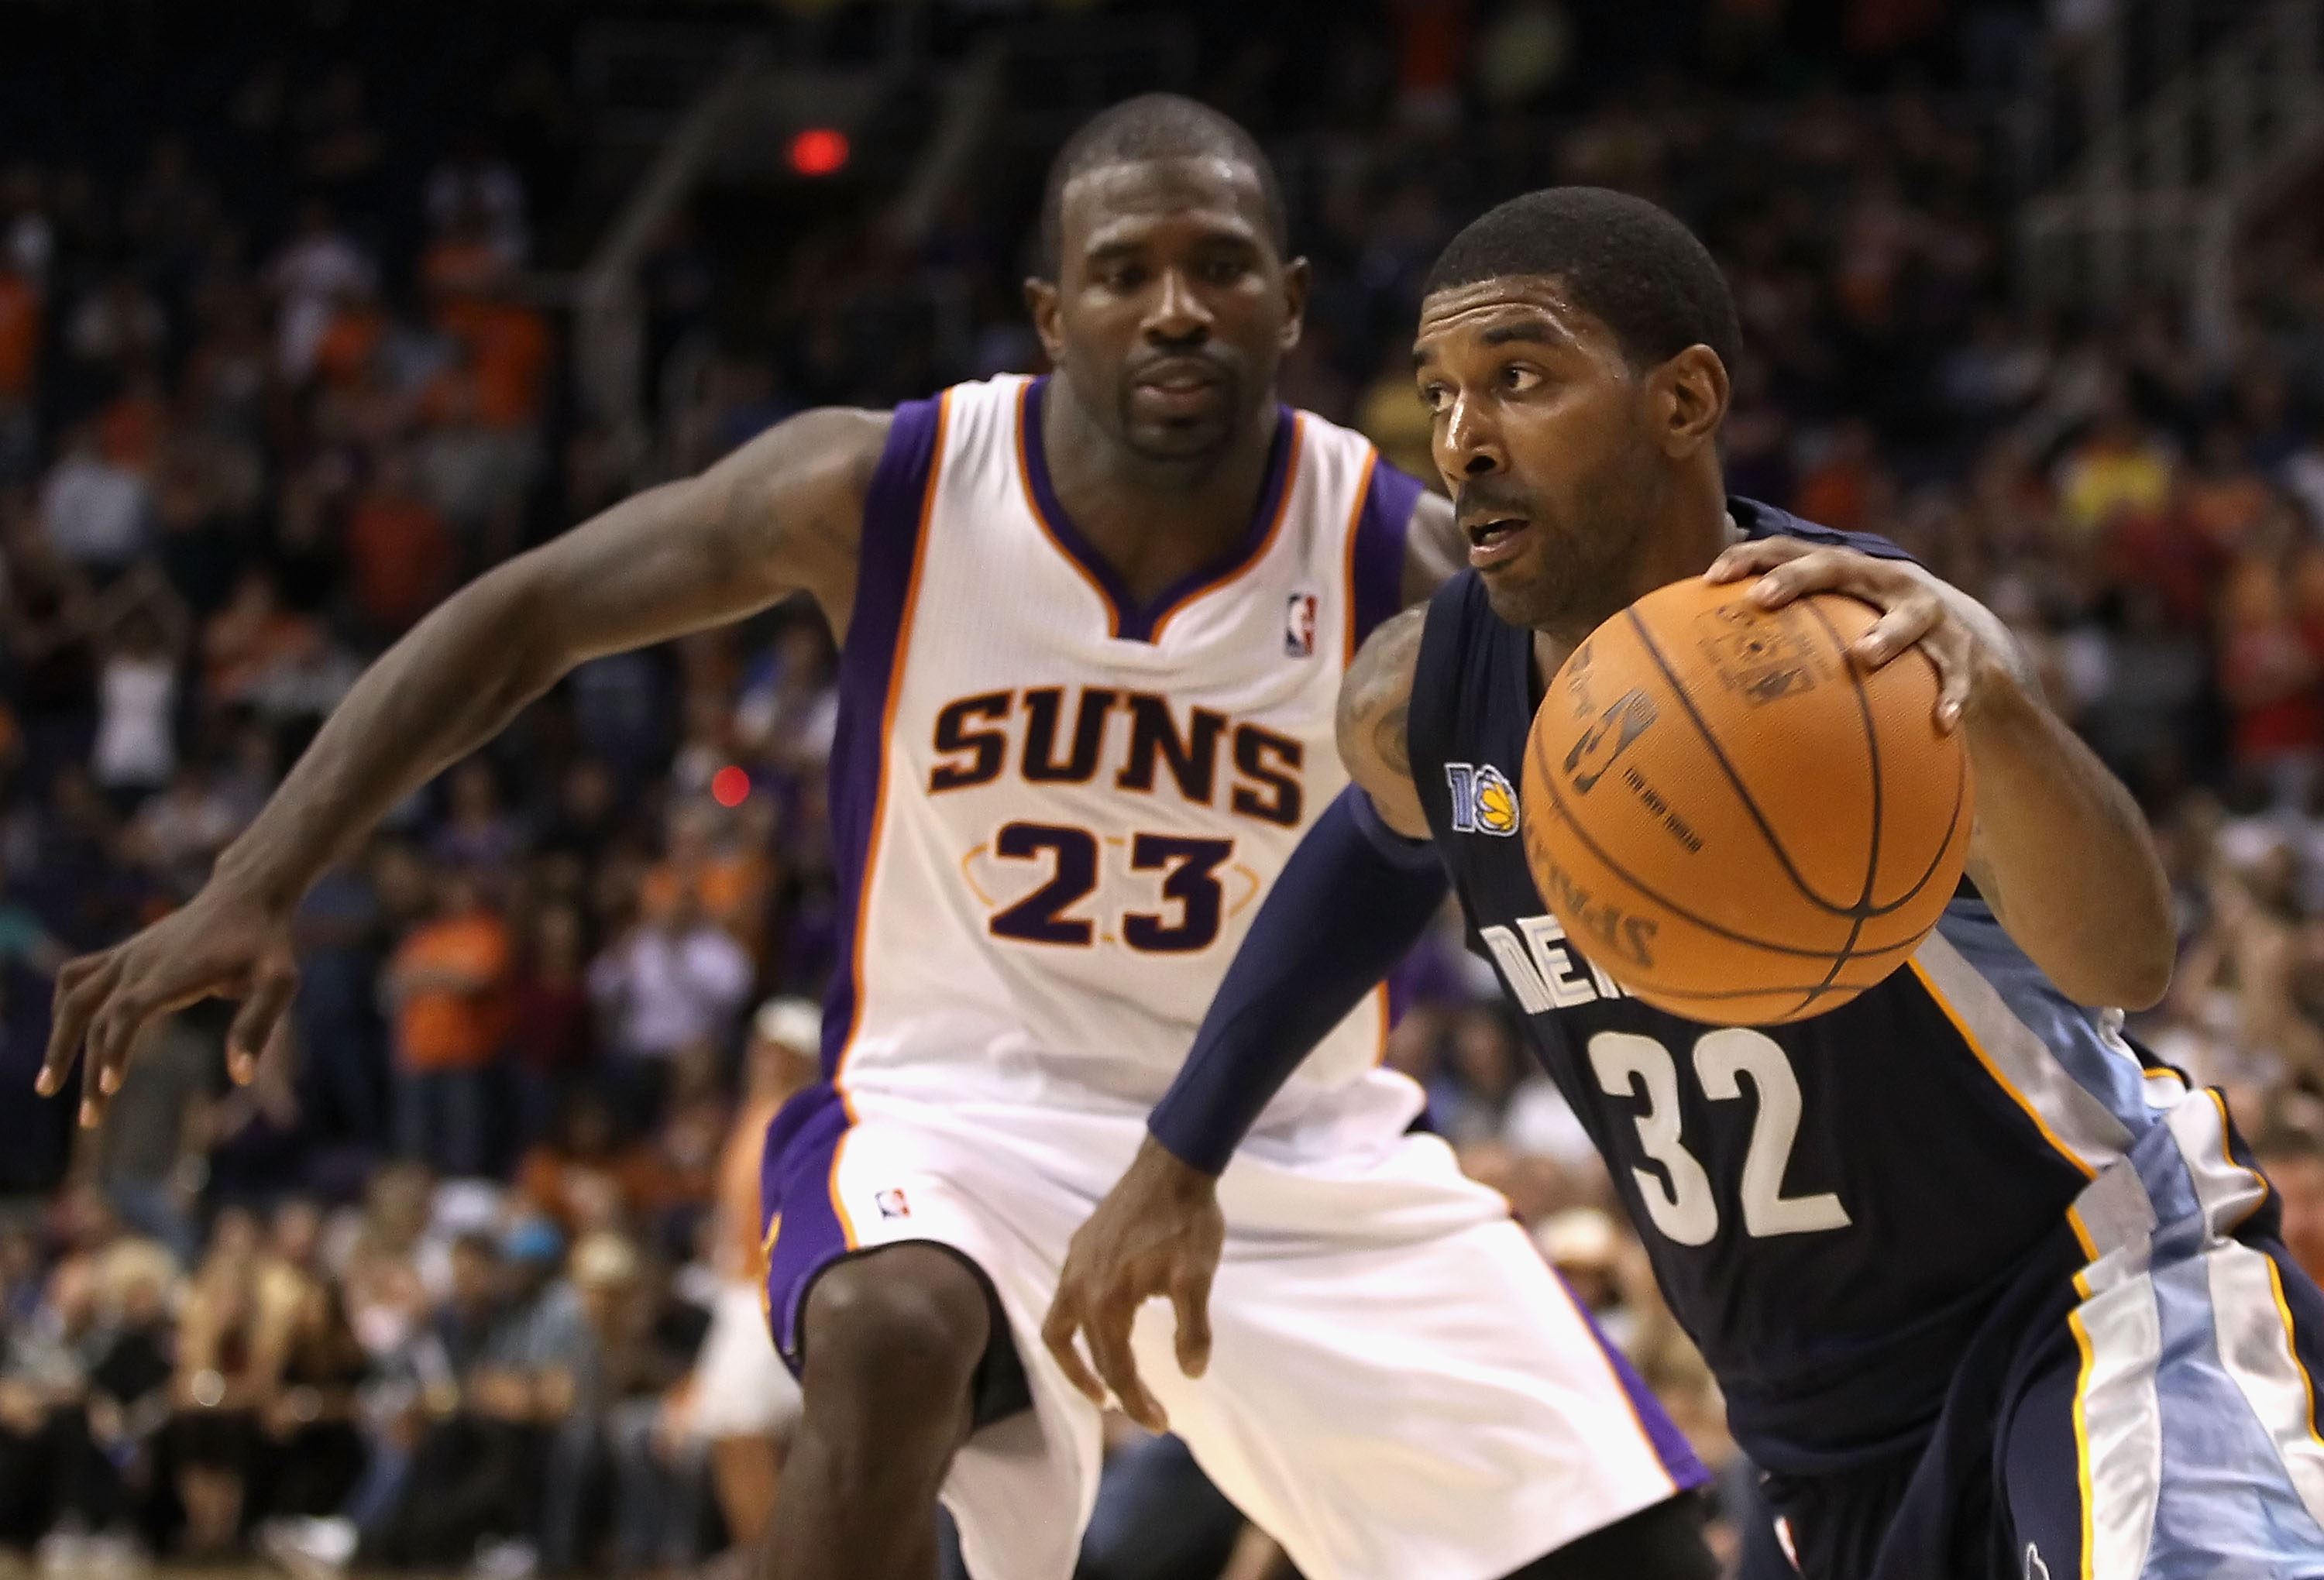 PHOENIX - NOVEMBER 05:  O.J. Mayo #32 of the Memphis Grizzlies drives the ball past Jason Richardson #23 of the Phoenix Suns during the NBA game at US Airways Center on November 5, 2010 in Phoenix, Arizona. The Suns defeated the Grizzlies 123-118 in doubl